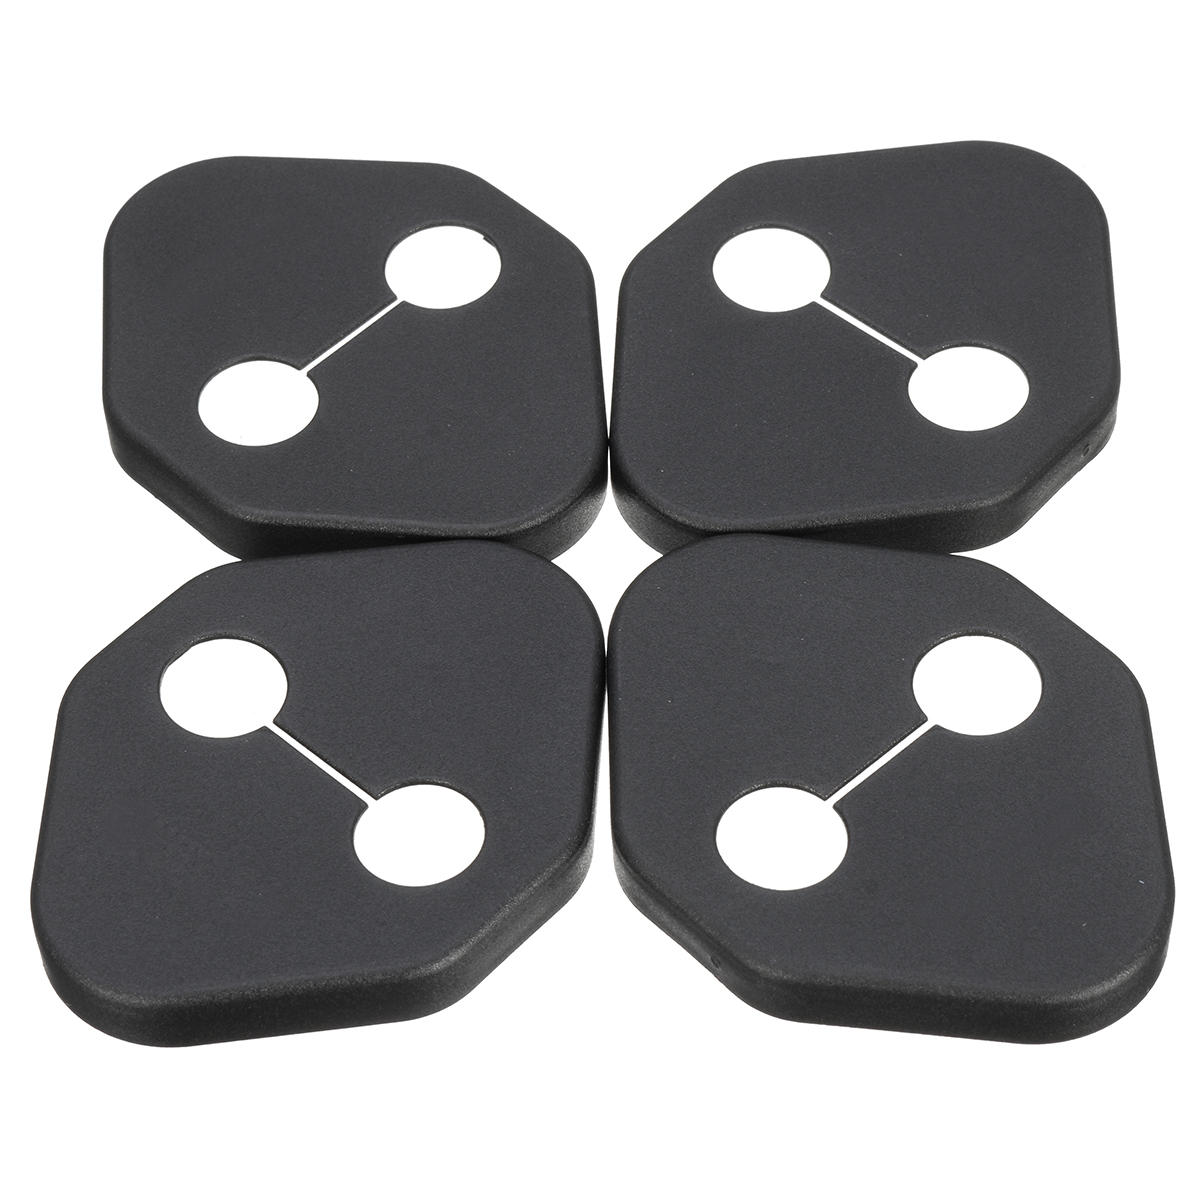 4Pcs Door Lock Ring Protective Car Cover Case For Honda Accord Civic CR-V